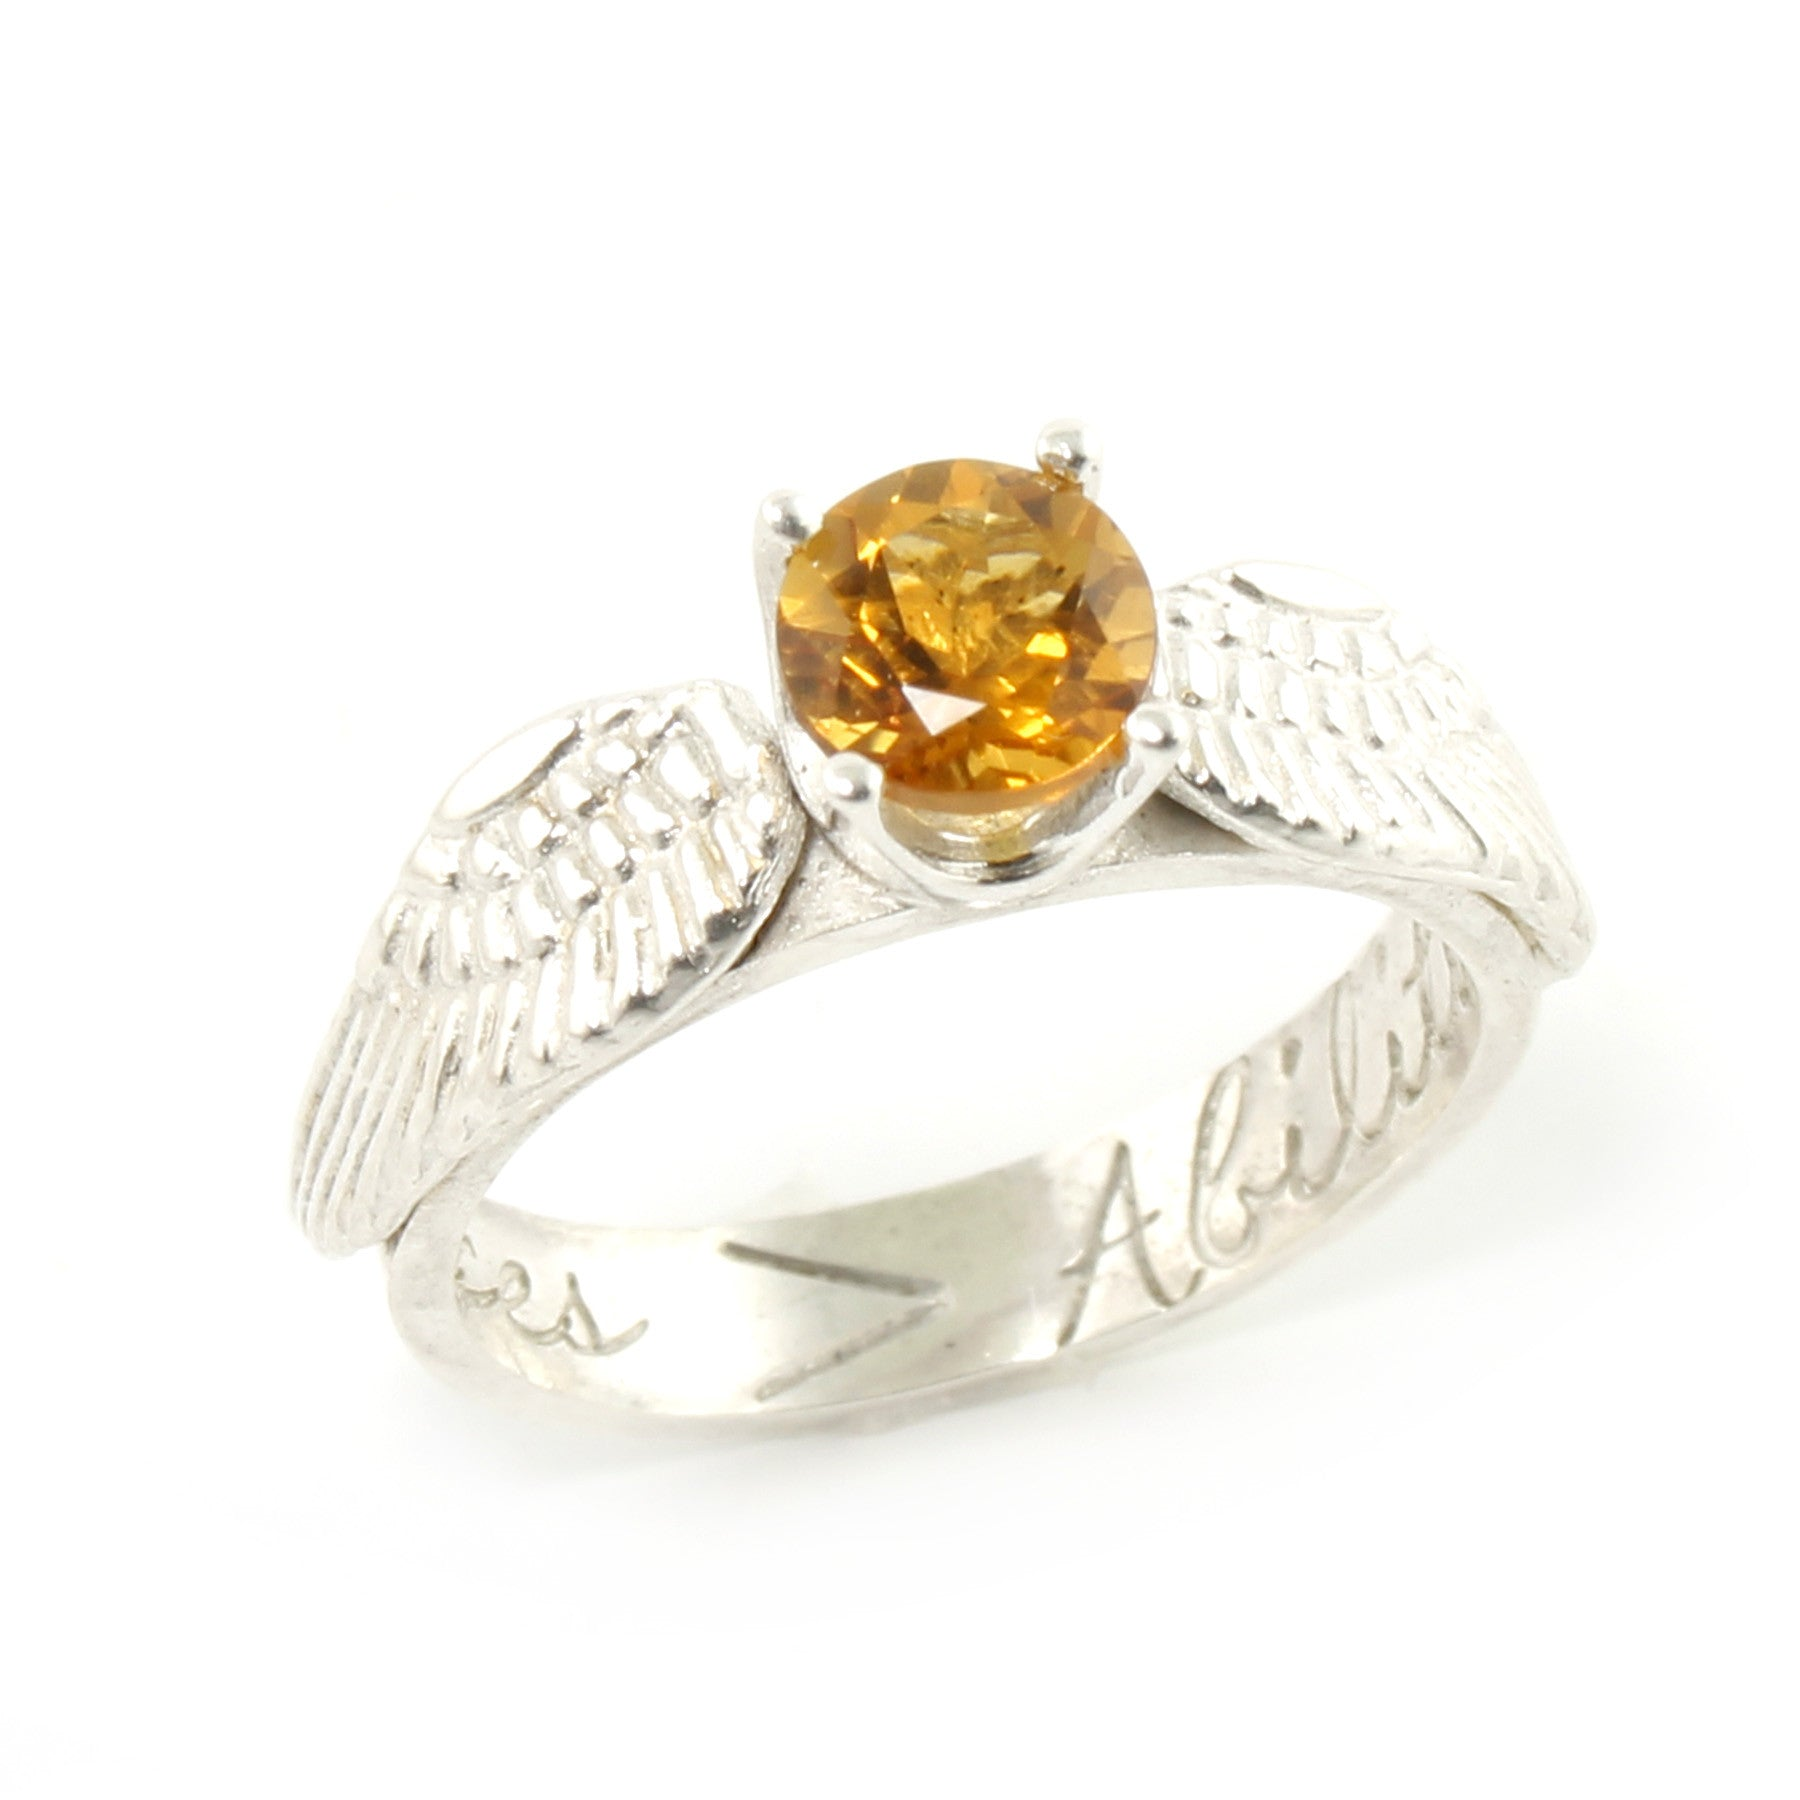 ... Golden Snitch Ring   Harry Potter Engagement Ring ...